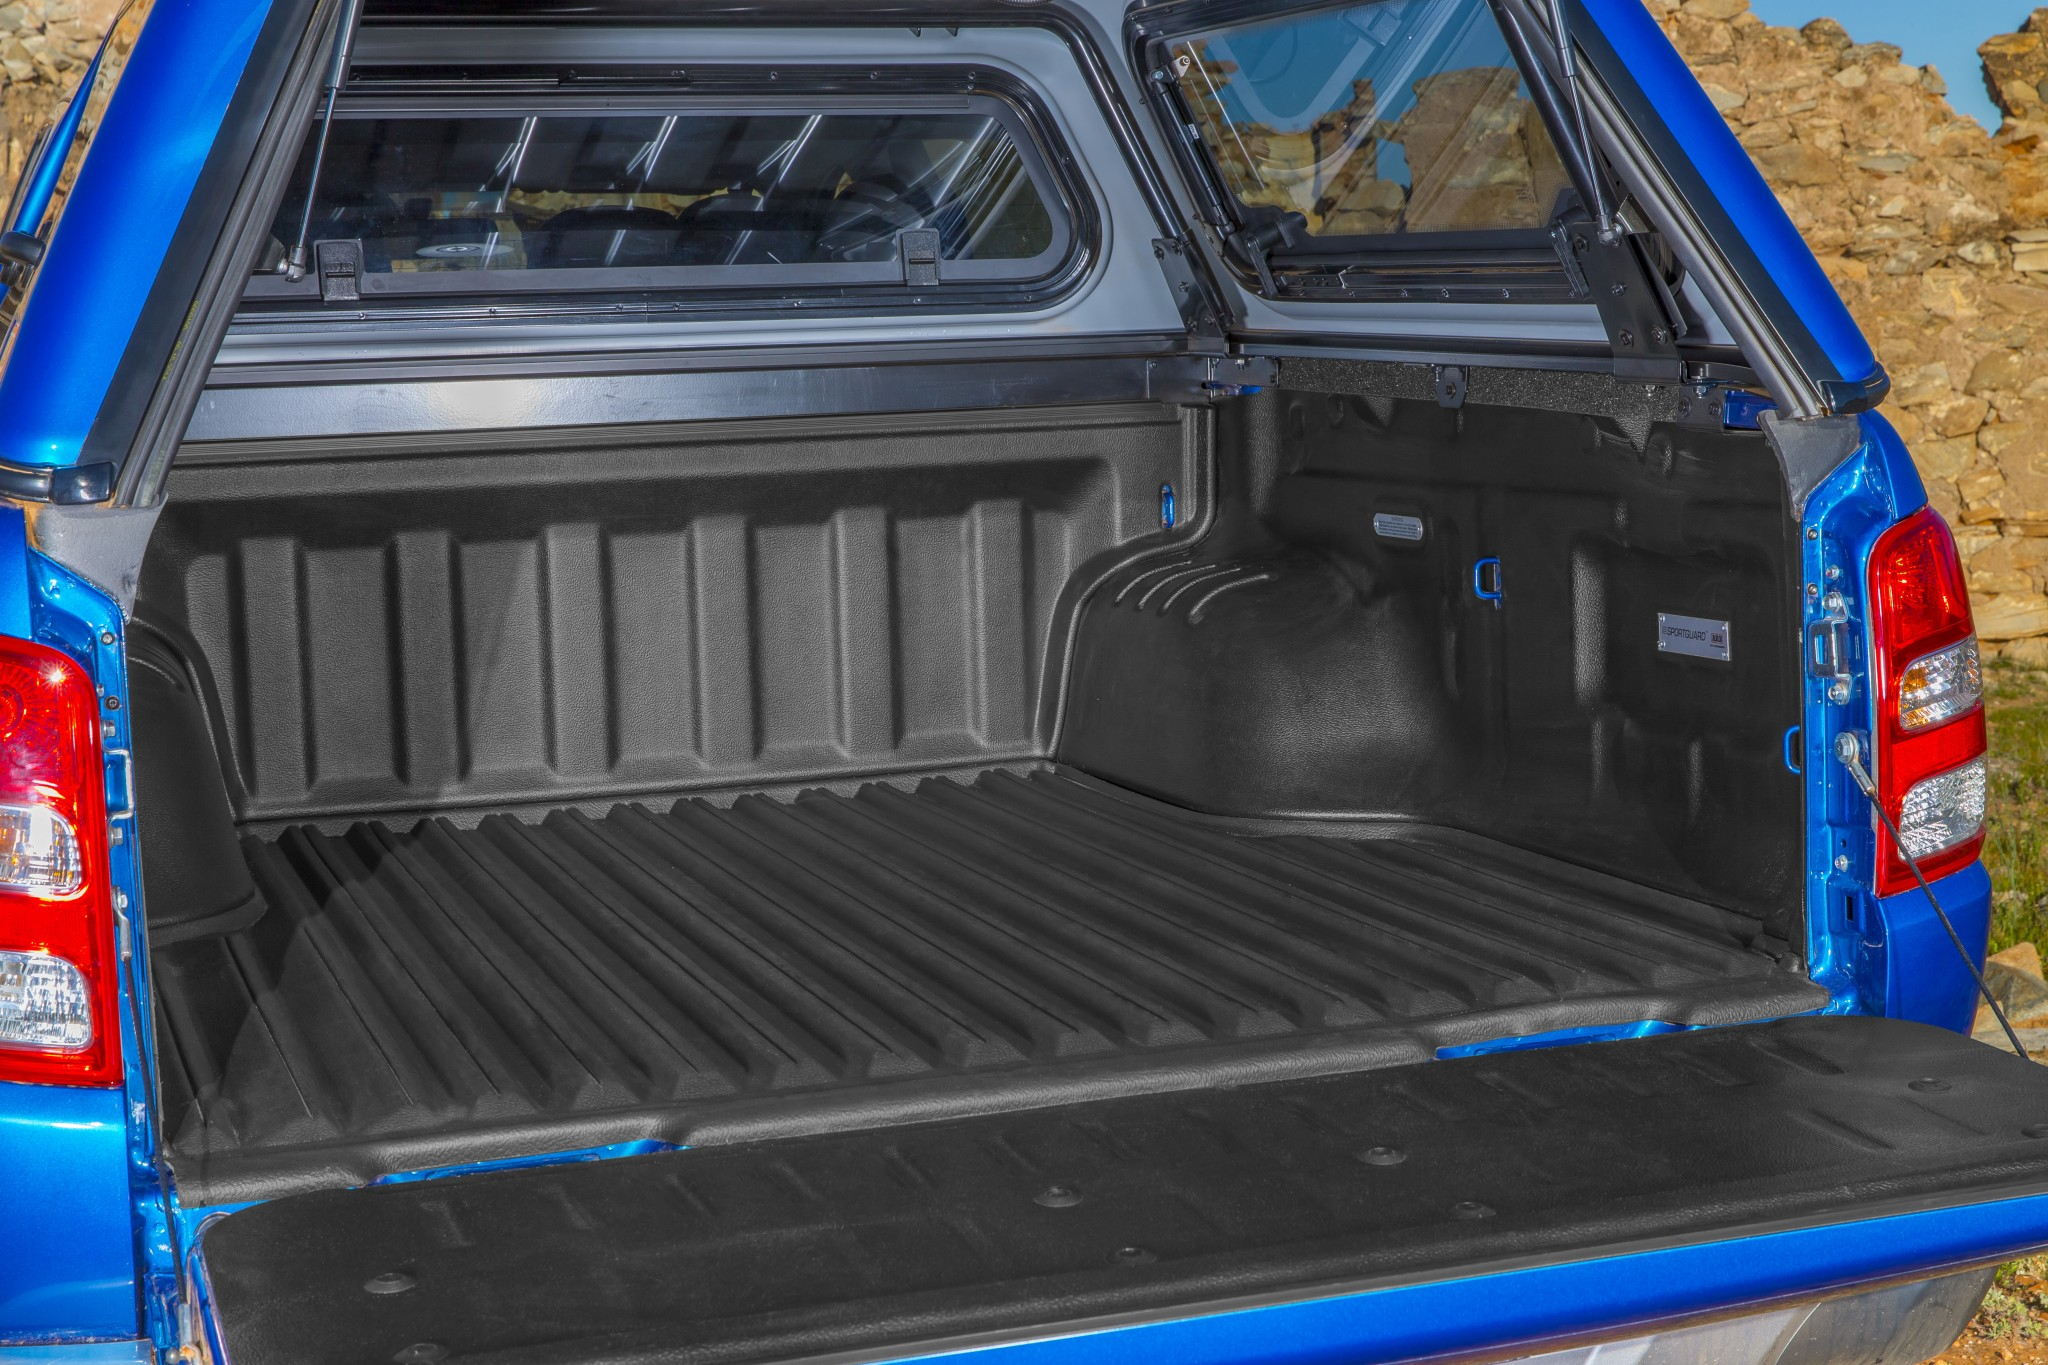 & ARB Sportguard Ute liner revealed | Practical Motoring